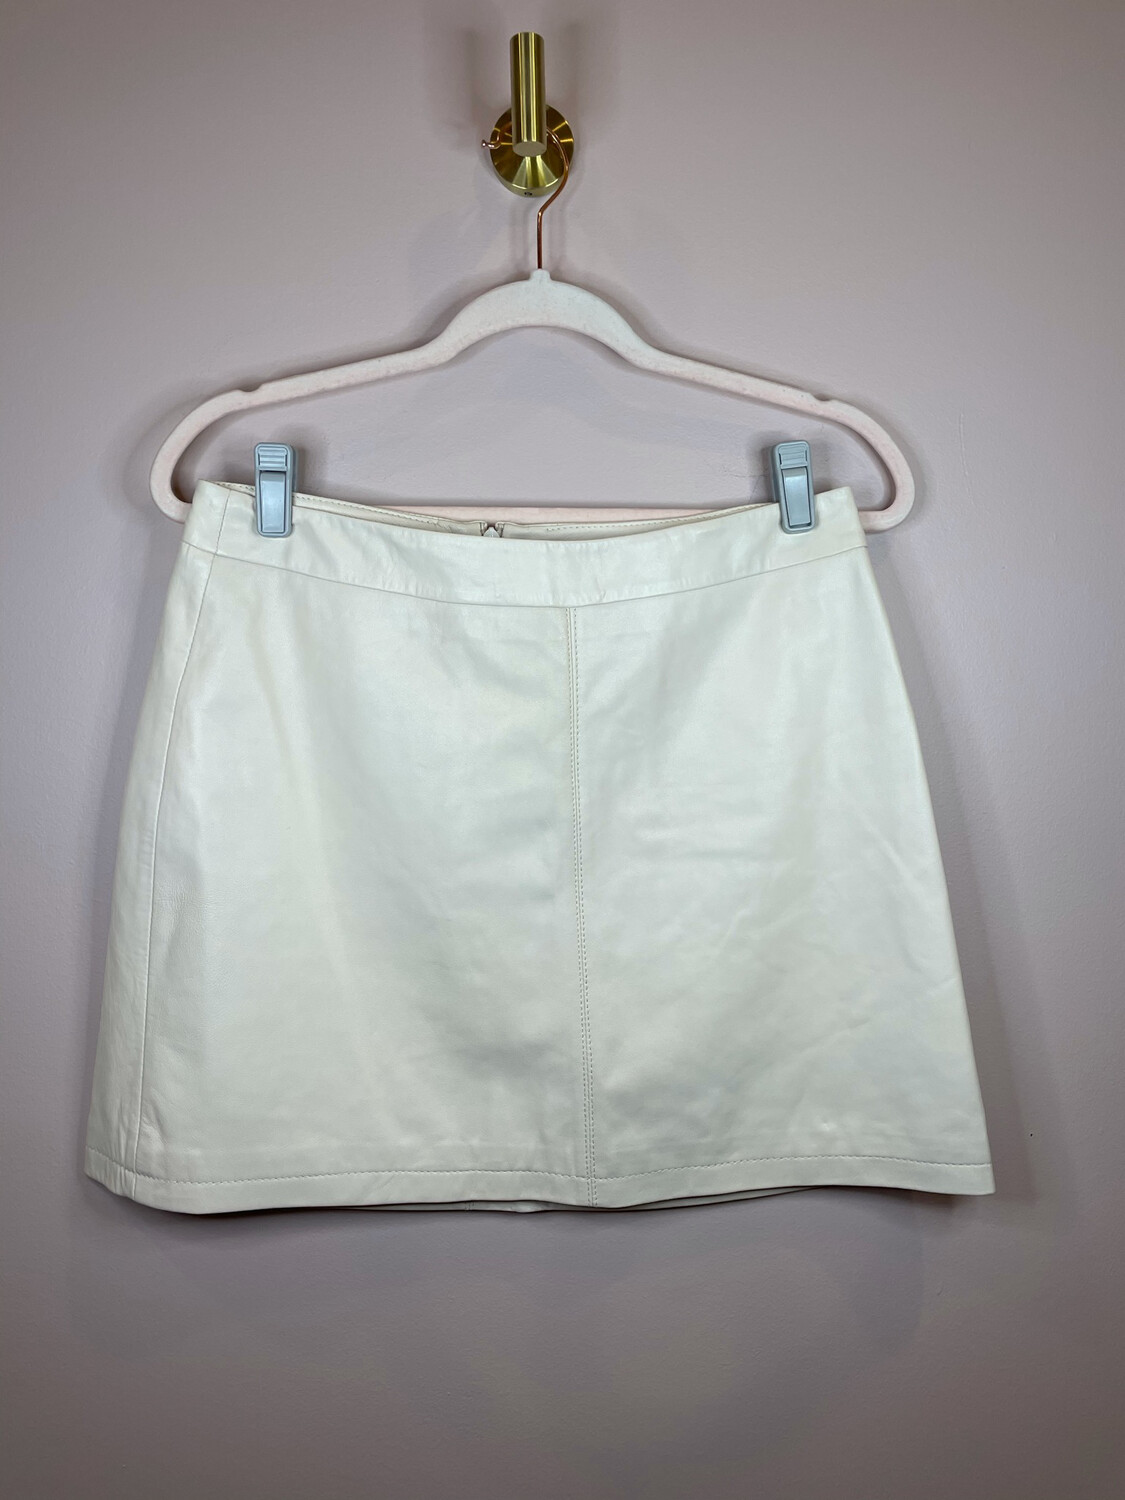 Cupcakes and Cashmere Cream Leather Skirt - Size 6